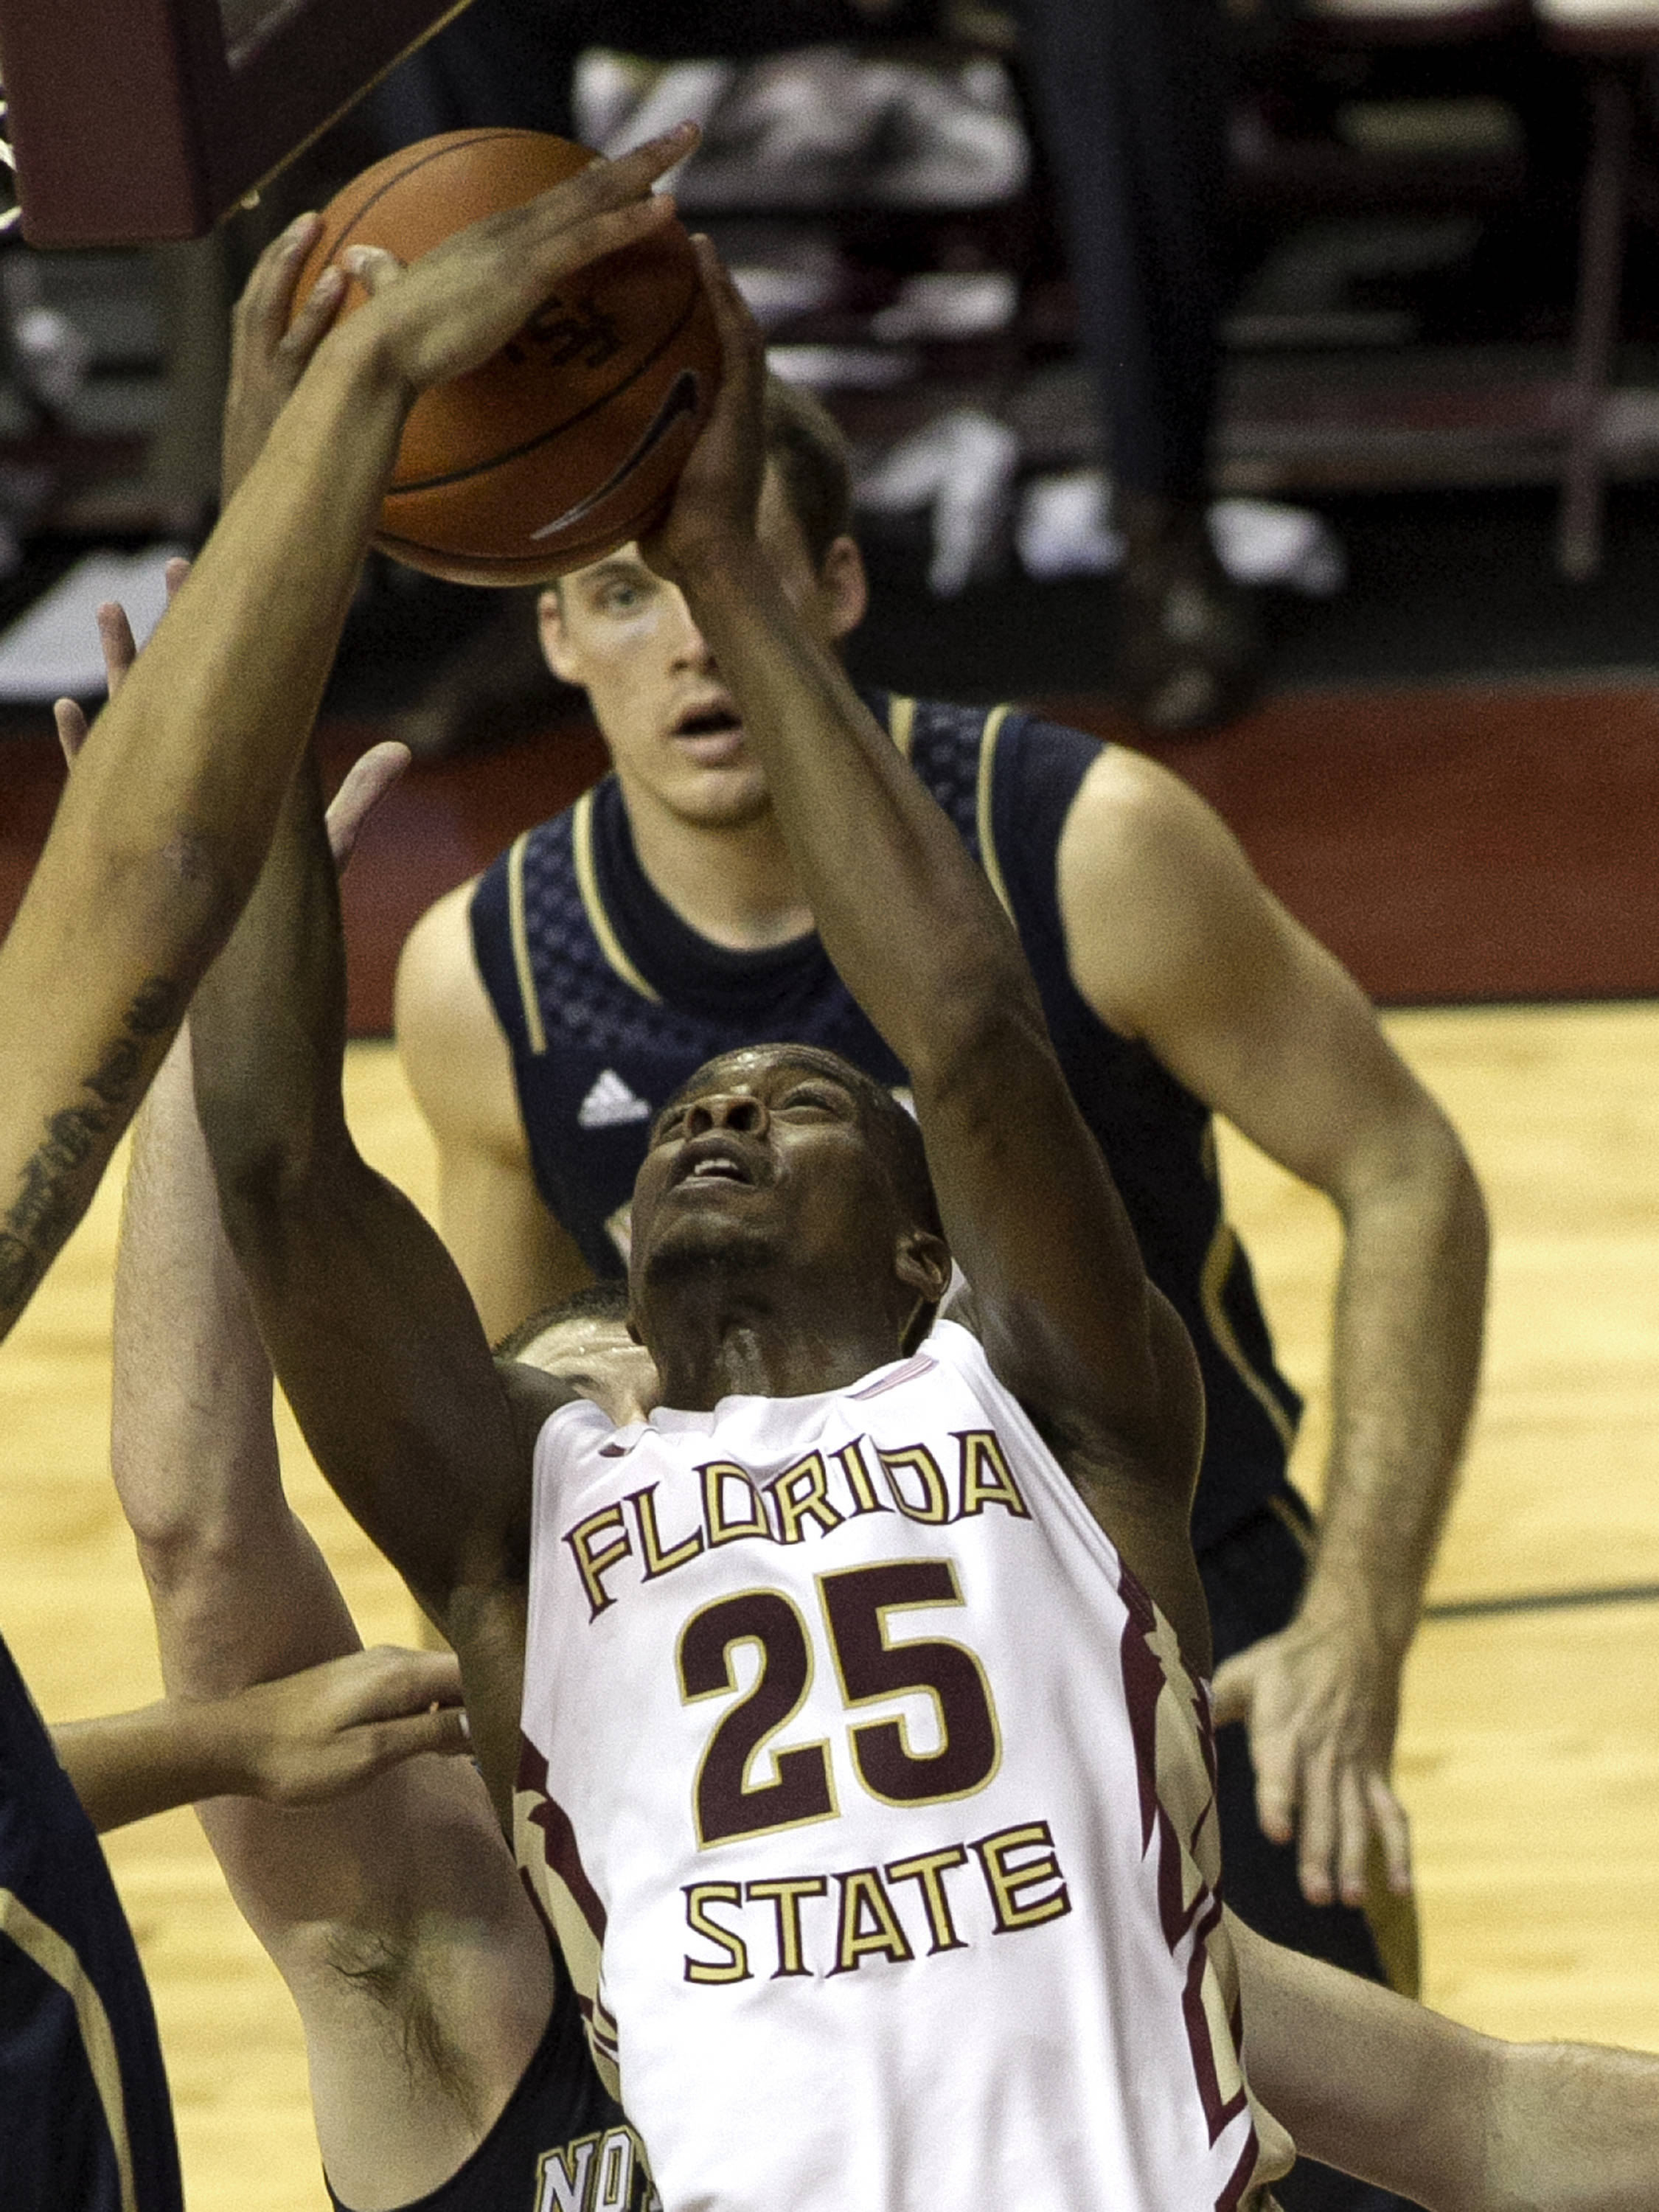 Aaron Thomas (25) battling under the basket, FSU vs Notre Dame, 1-21-14, (Photo's by Steve Musco)